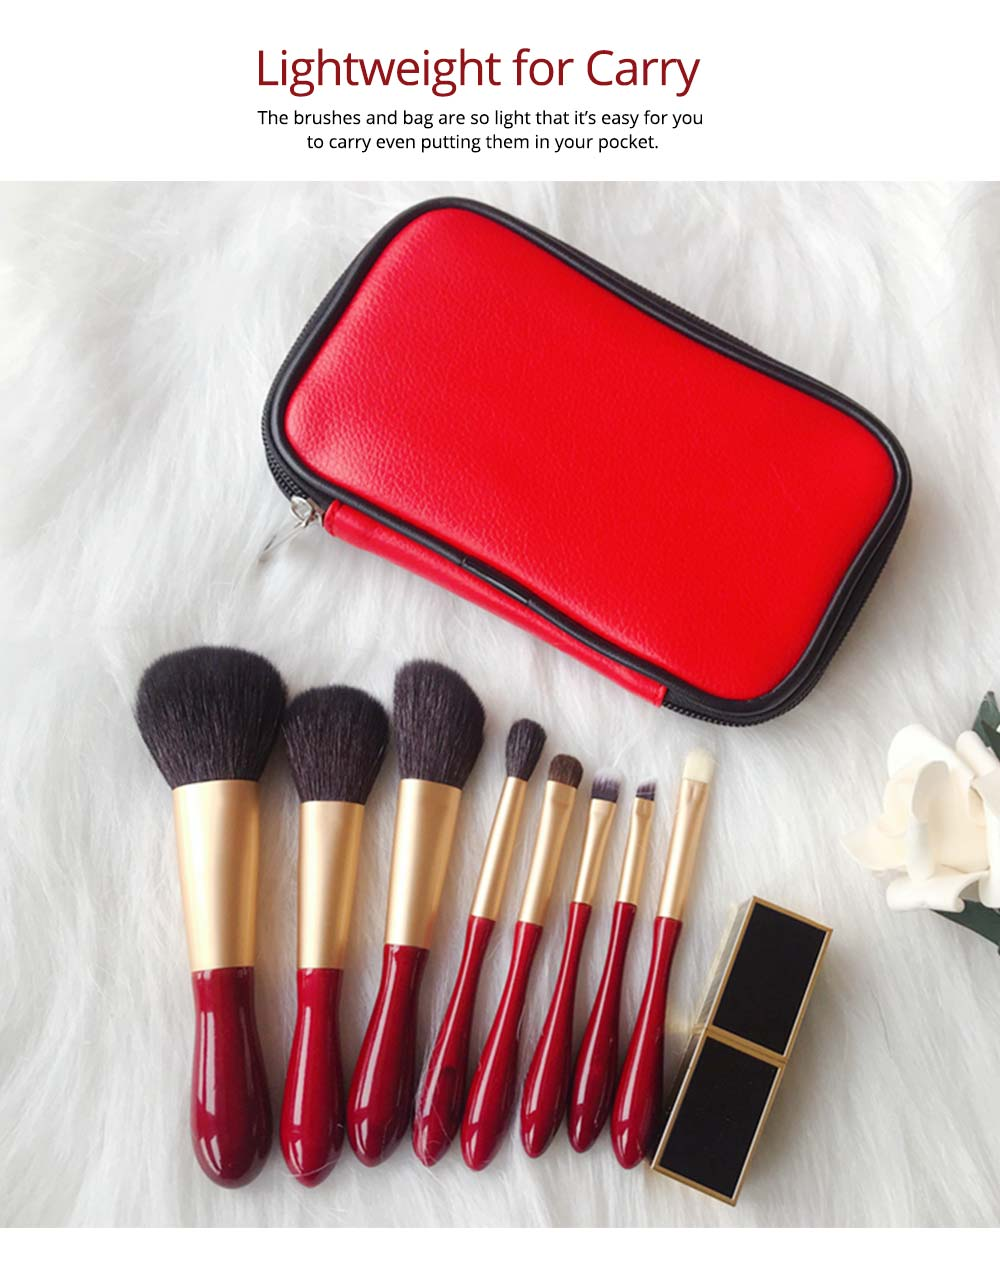 8pcs Red Glaze Makeup Brushes Soft Cosmetic Eyebrow Shadow Brush Tool Set with Bag for Freshman of Makeup 3